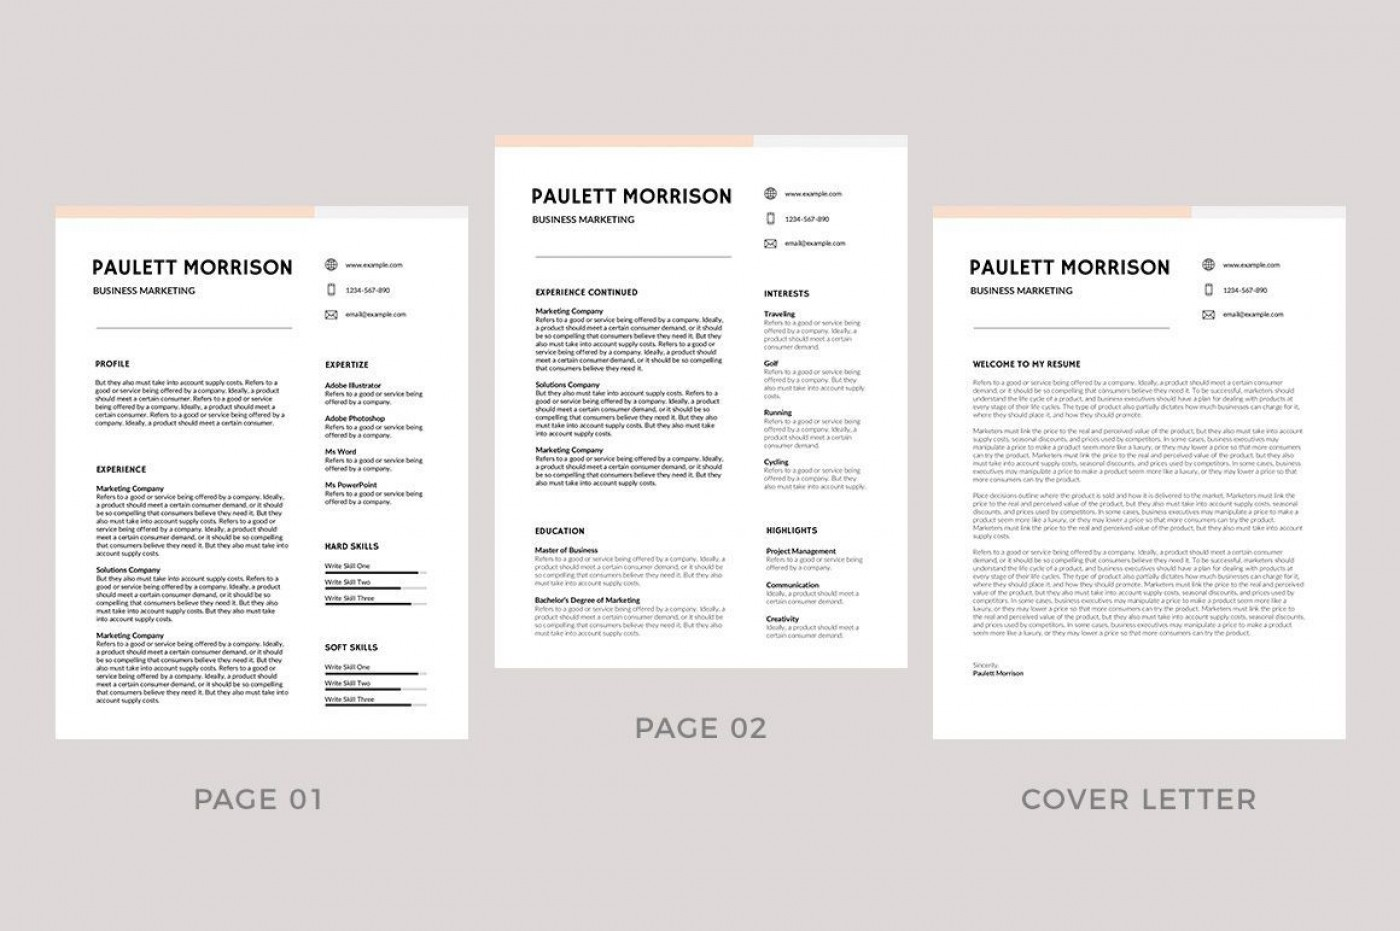 009 Remarkable Professional Resume Template 2018 Free Download High Definition 1400